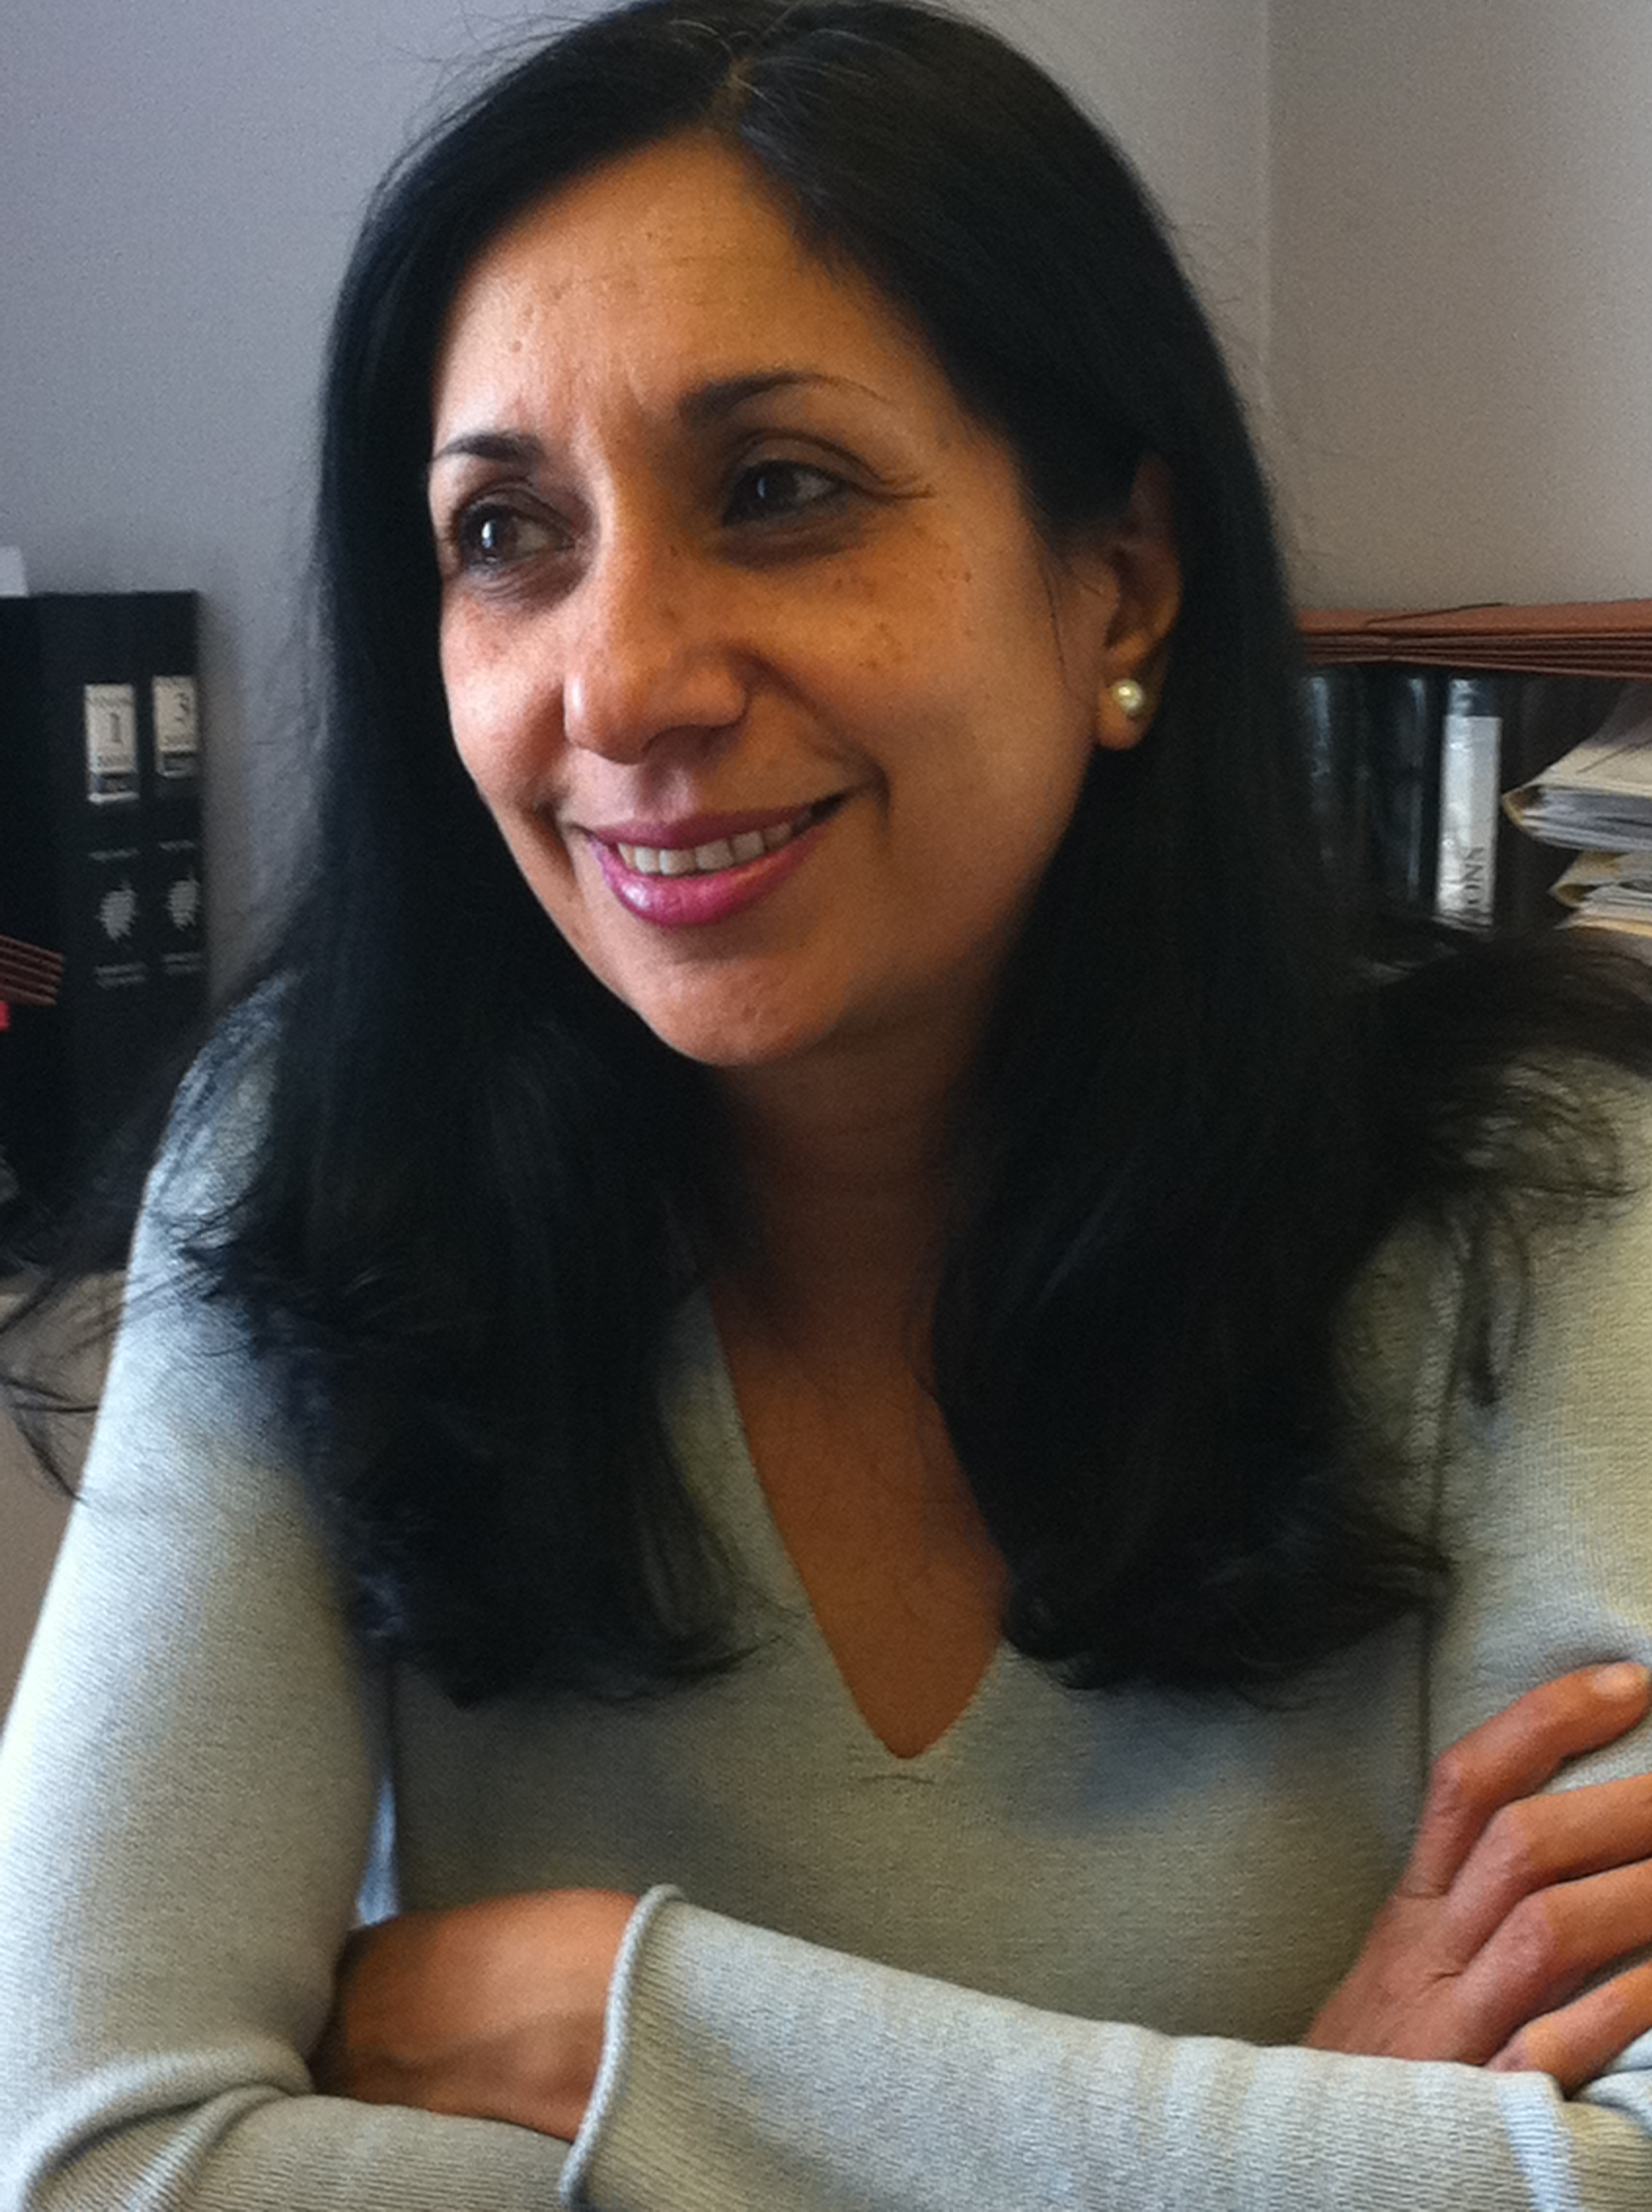 Meenakshi srinivasan discusses her role as chair of the board of meenakshi srinivasan altavistaventures Gallery